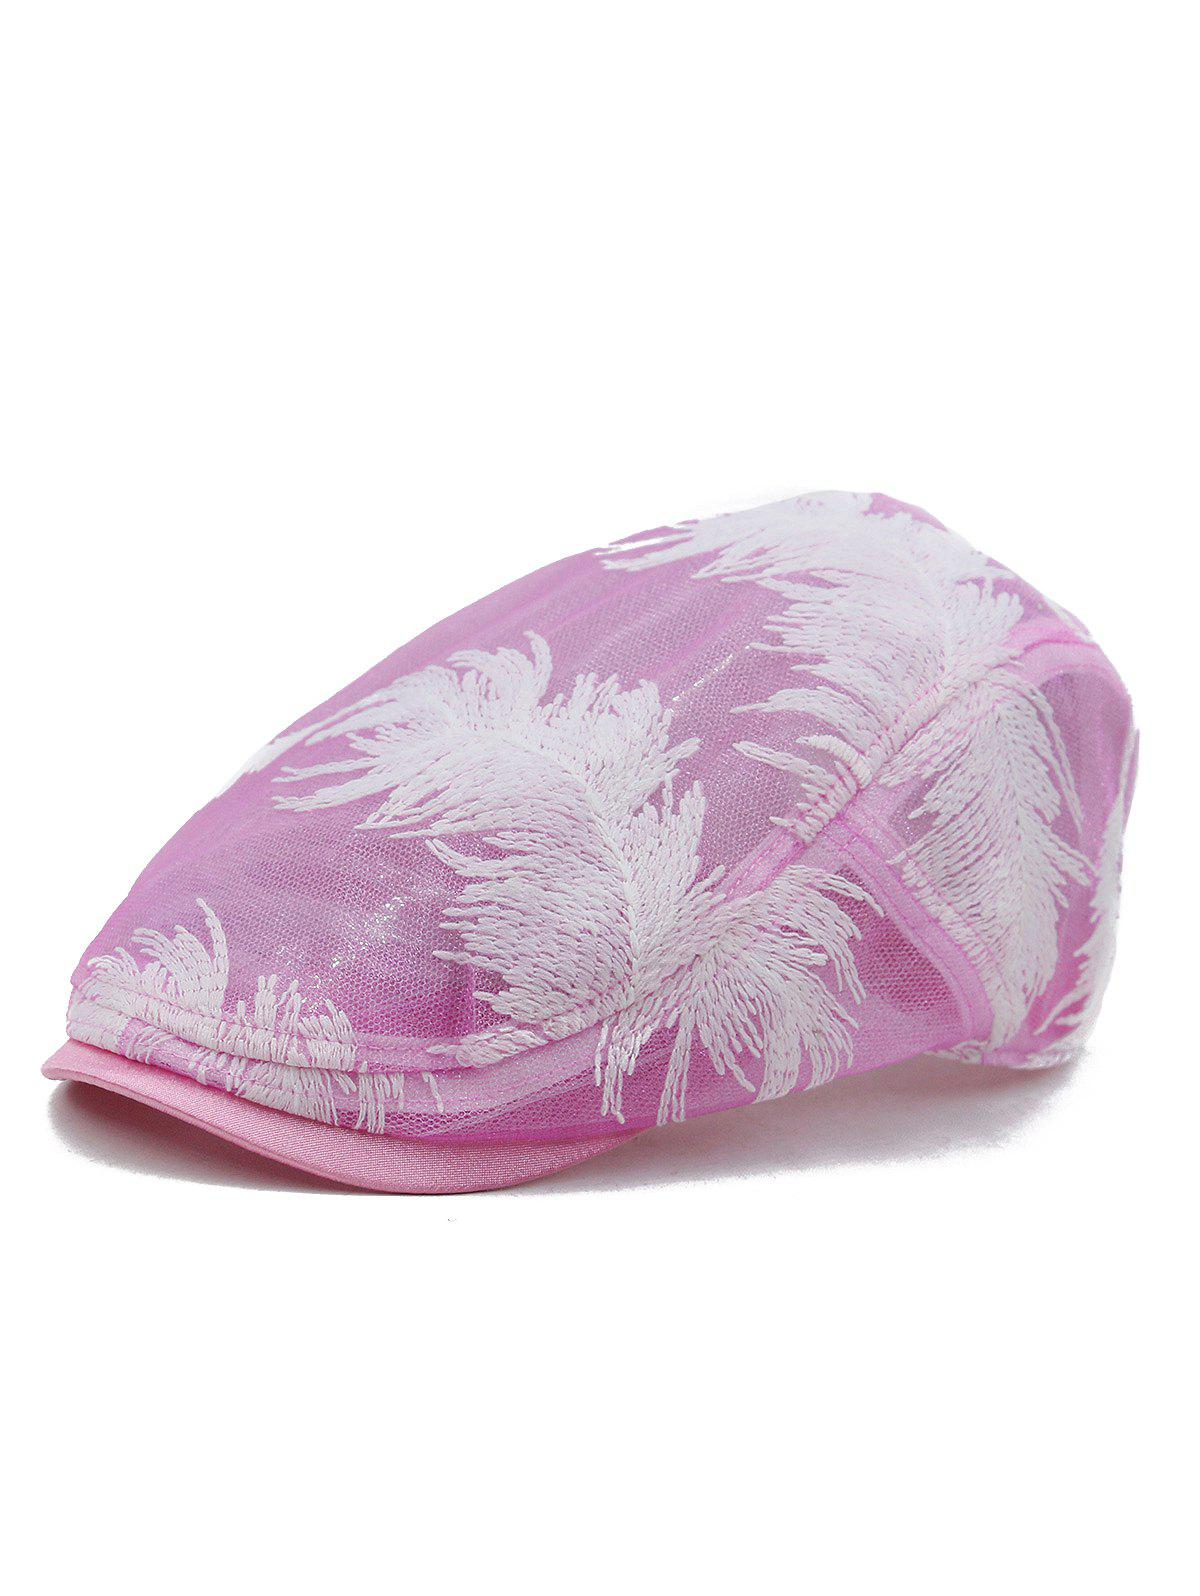 Unique Feather Decorated Newsboy Cap, Cadillac pink